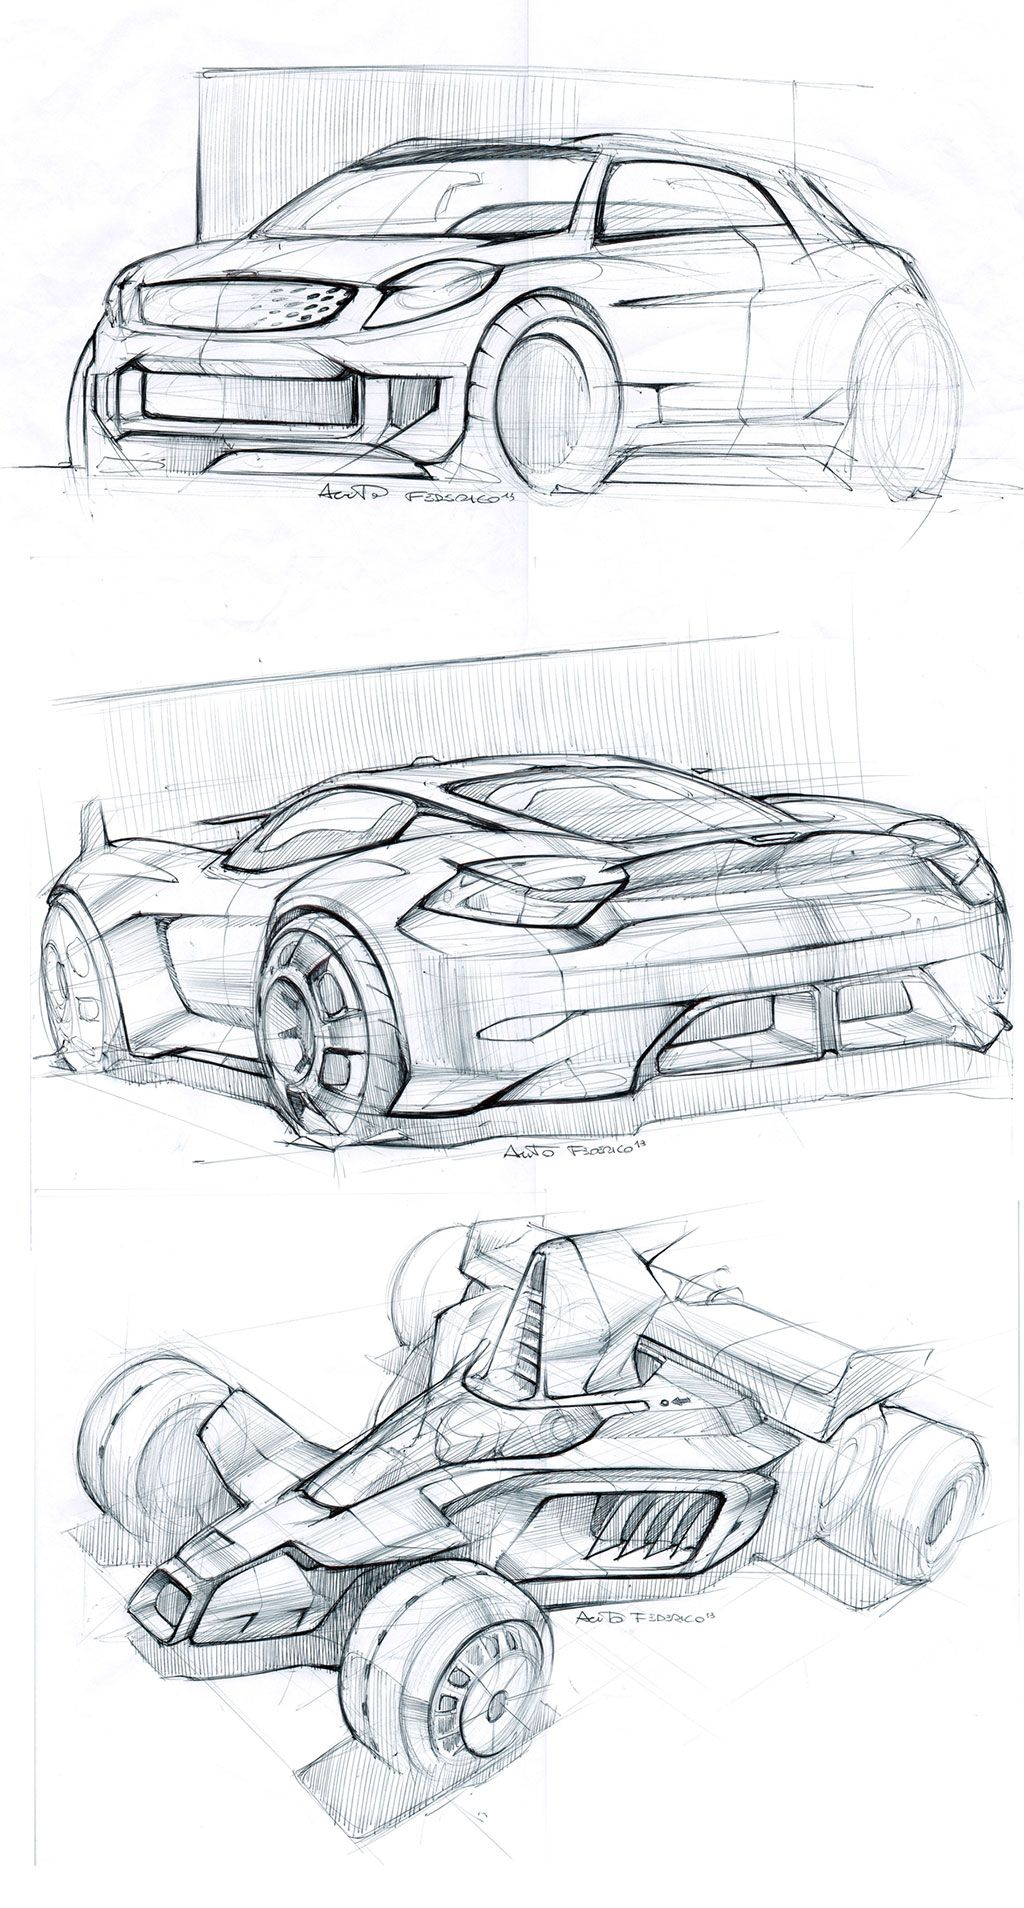 pin by gb 75 on sketching art